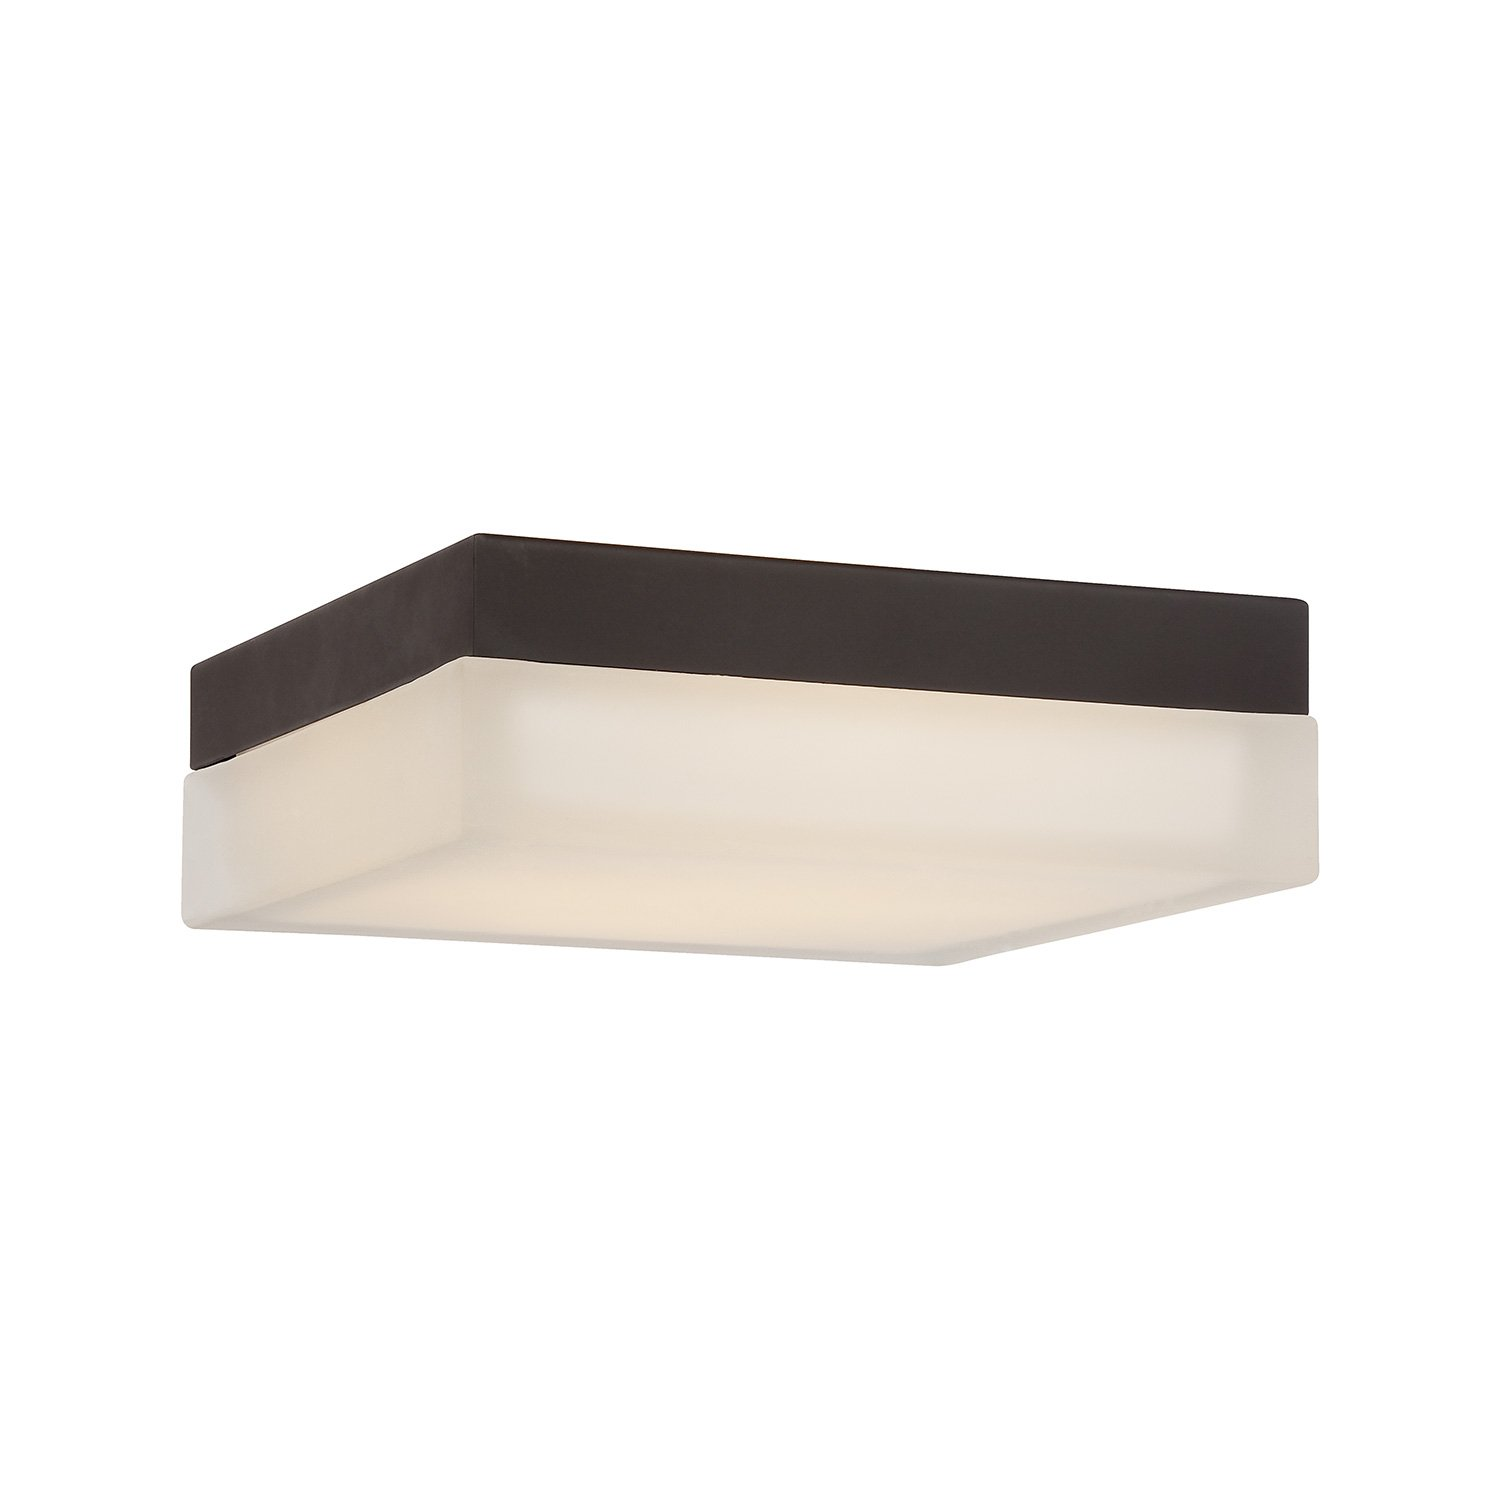 WAC Lighting FM-4006-27-BZ 6in Square Warm White